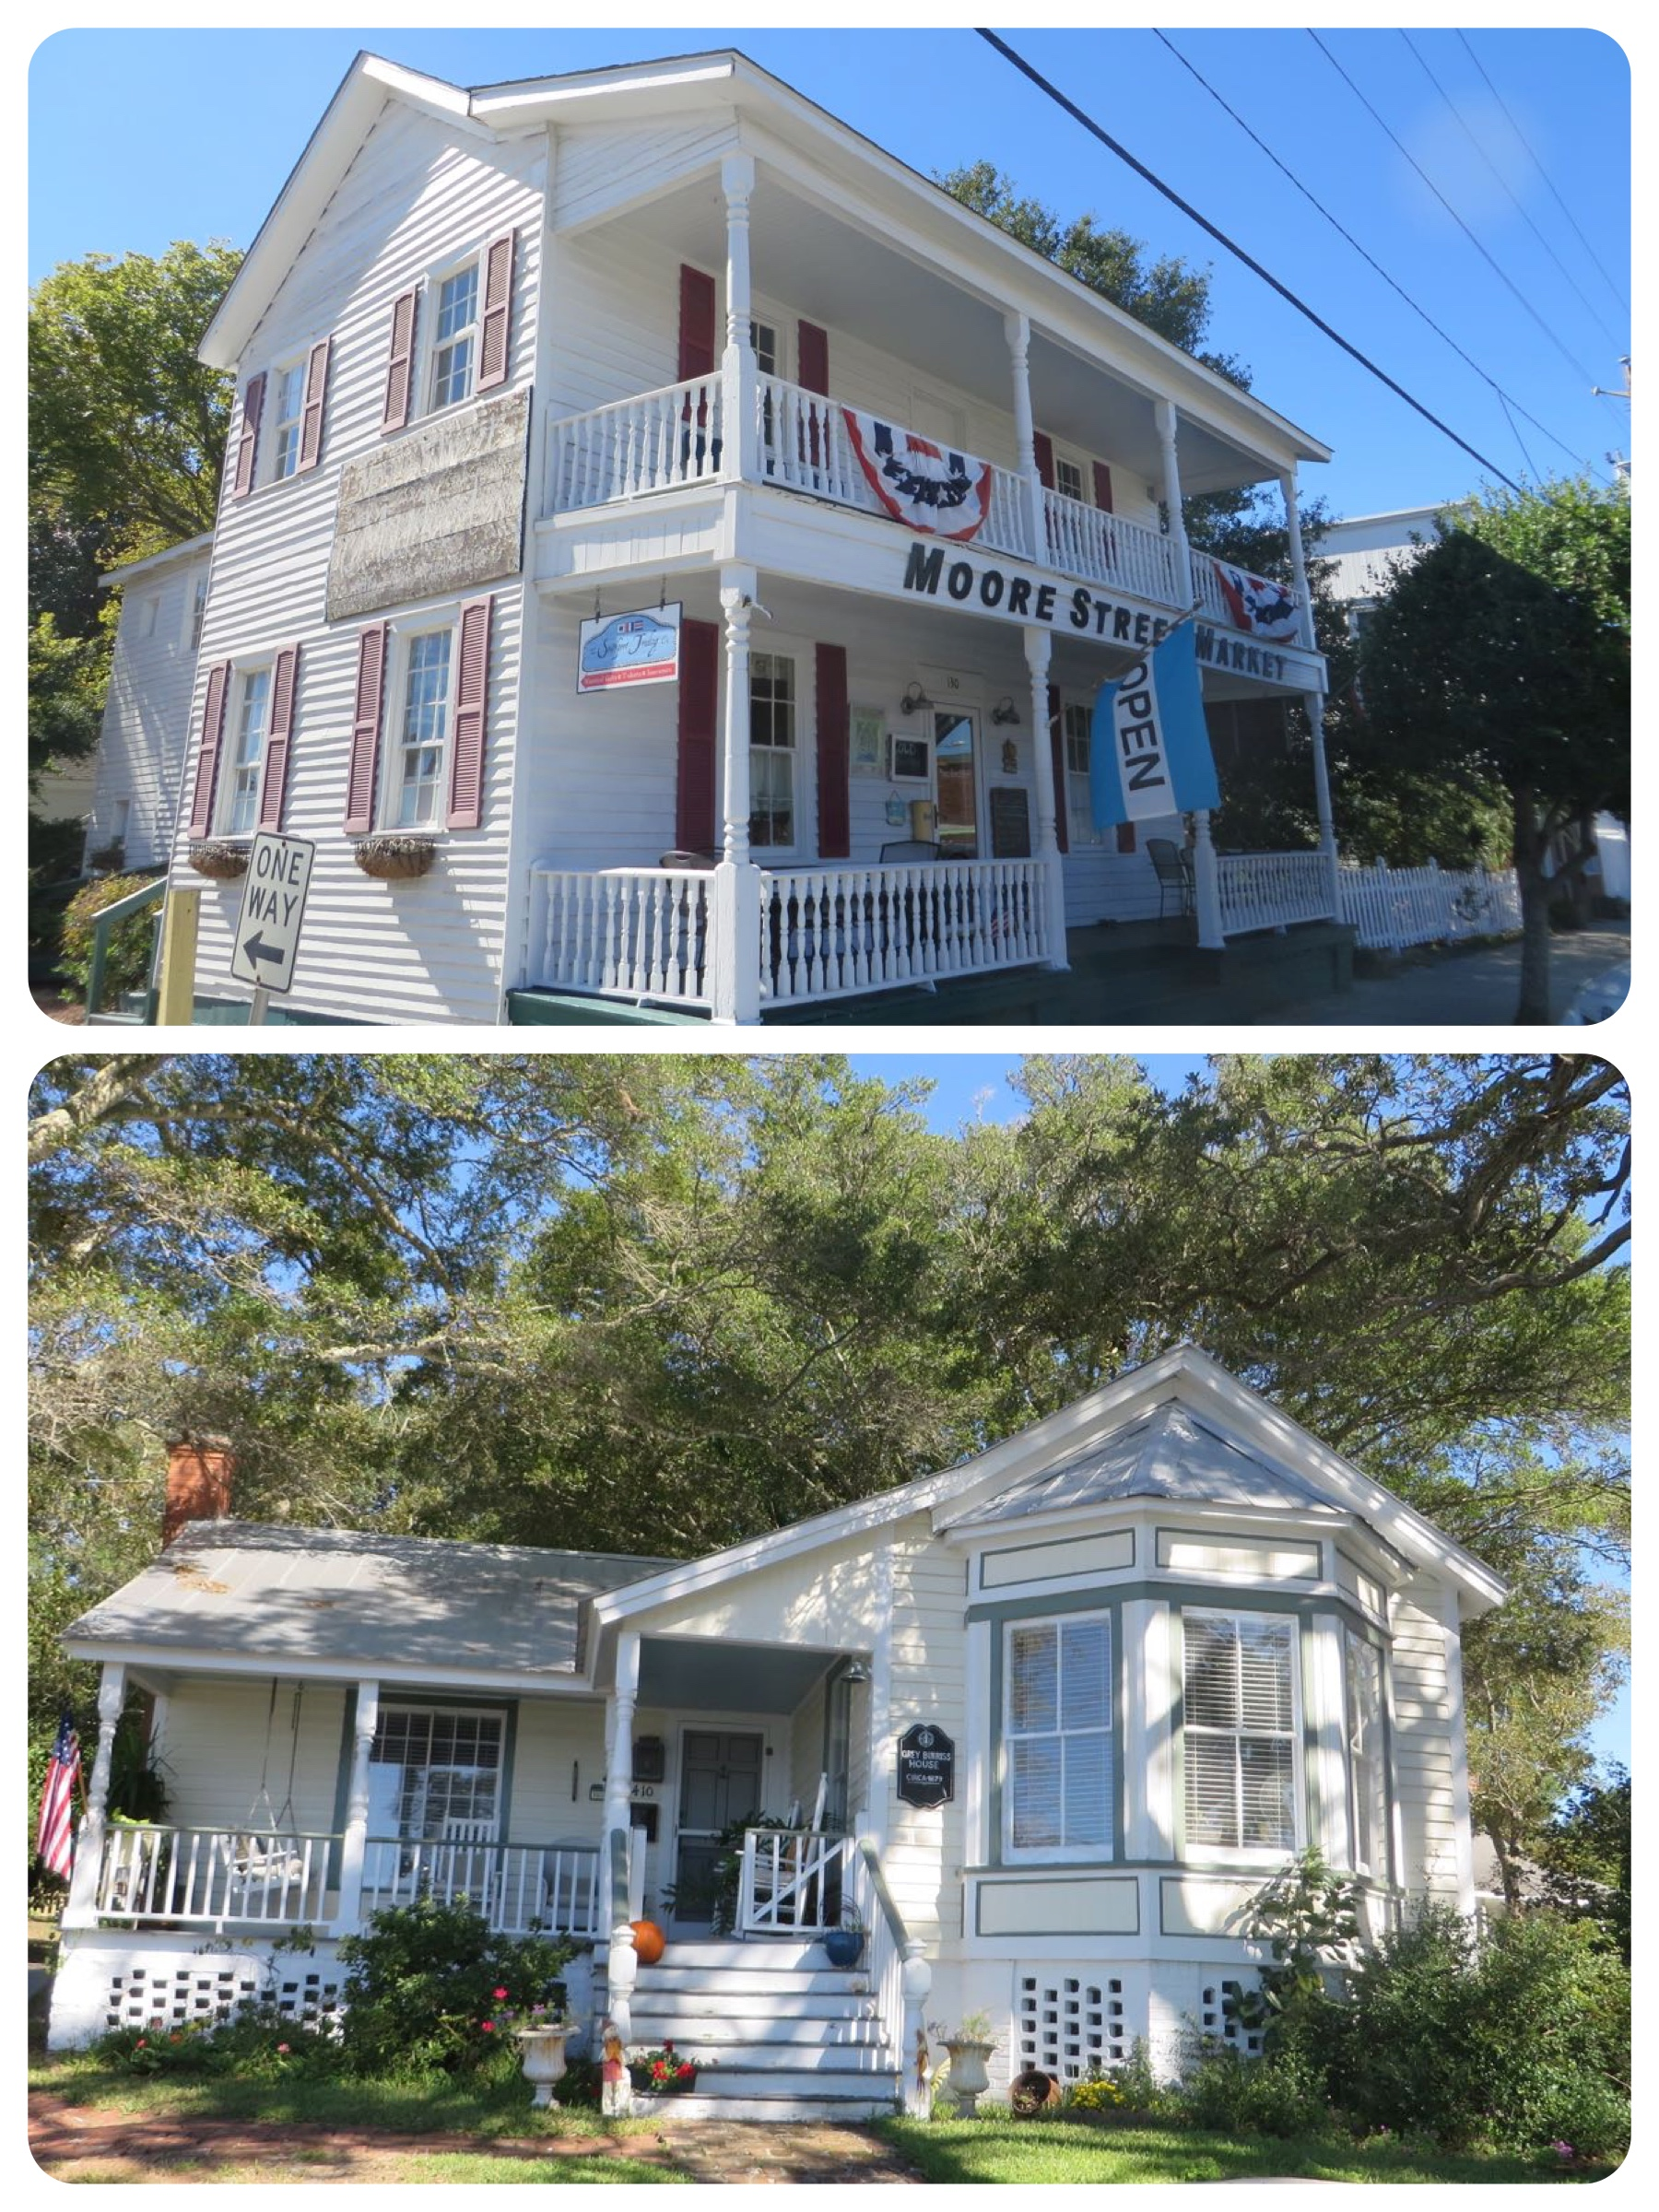 Top photo - Moore Street Market Bottom - Josh Duhamel's home. I actually photographed this house and included it in the blog from our 2013 visit. It's a darling little house right across from the docks.